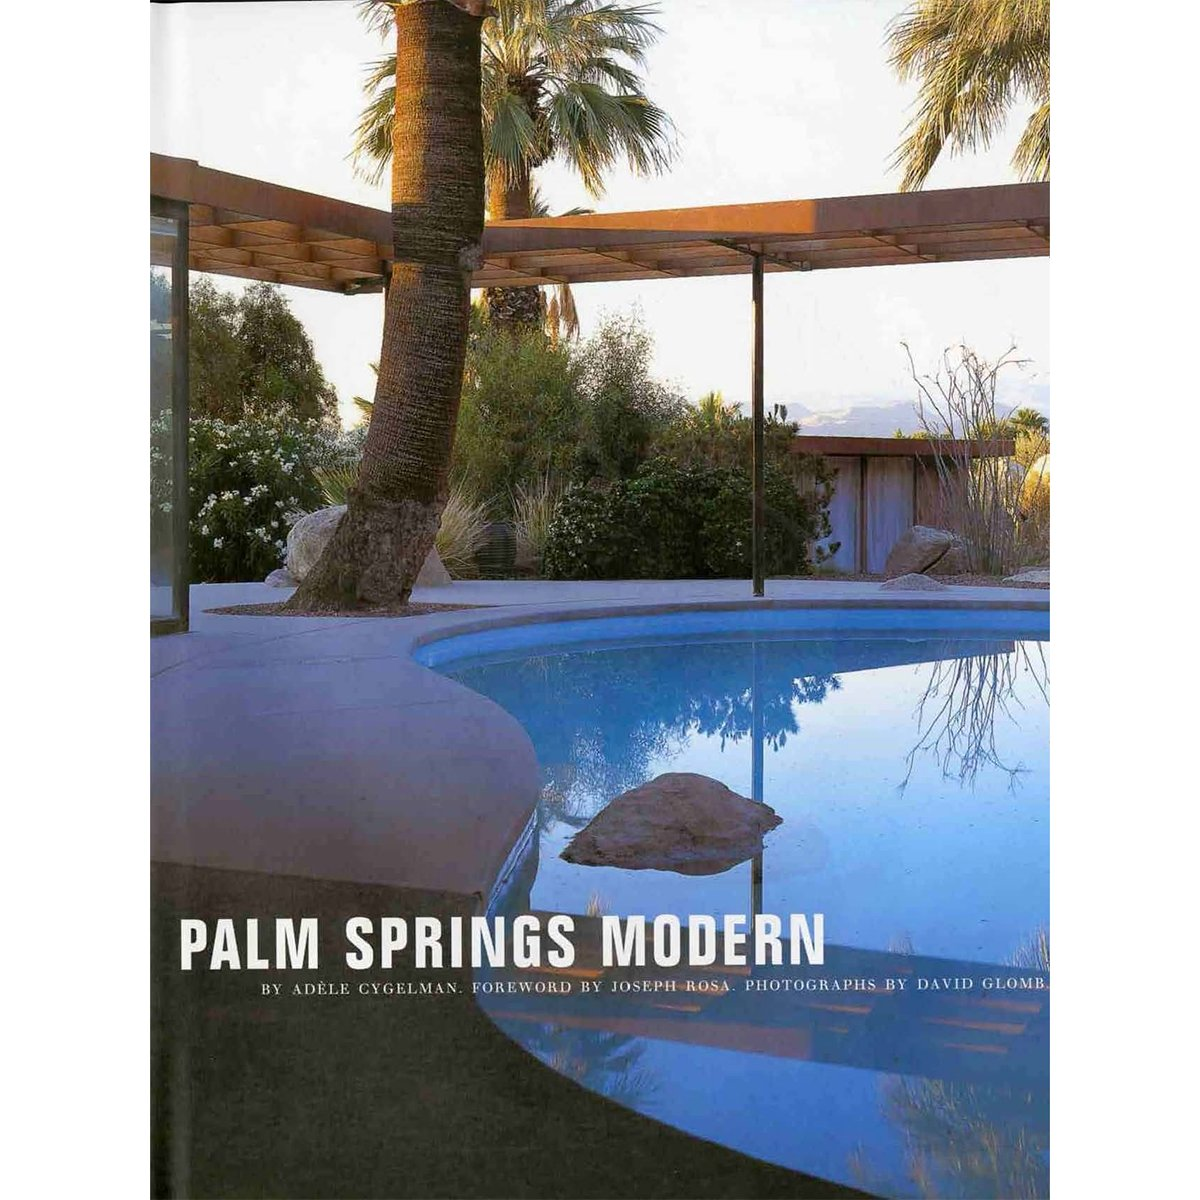 Each day we are presenting a book we love. Books are good for the soul.  Yesterday it was Adele Cygelman's Arthur Elrod. Today it's an early from also from Adele:  Palm Springs Modern: Houses in the California Desert.  https://soo.nr/Xxiu . .  . . #modernism pic.twitter.com/KmujgCLlkM